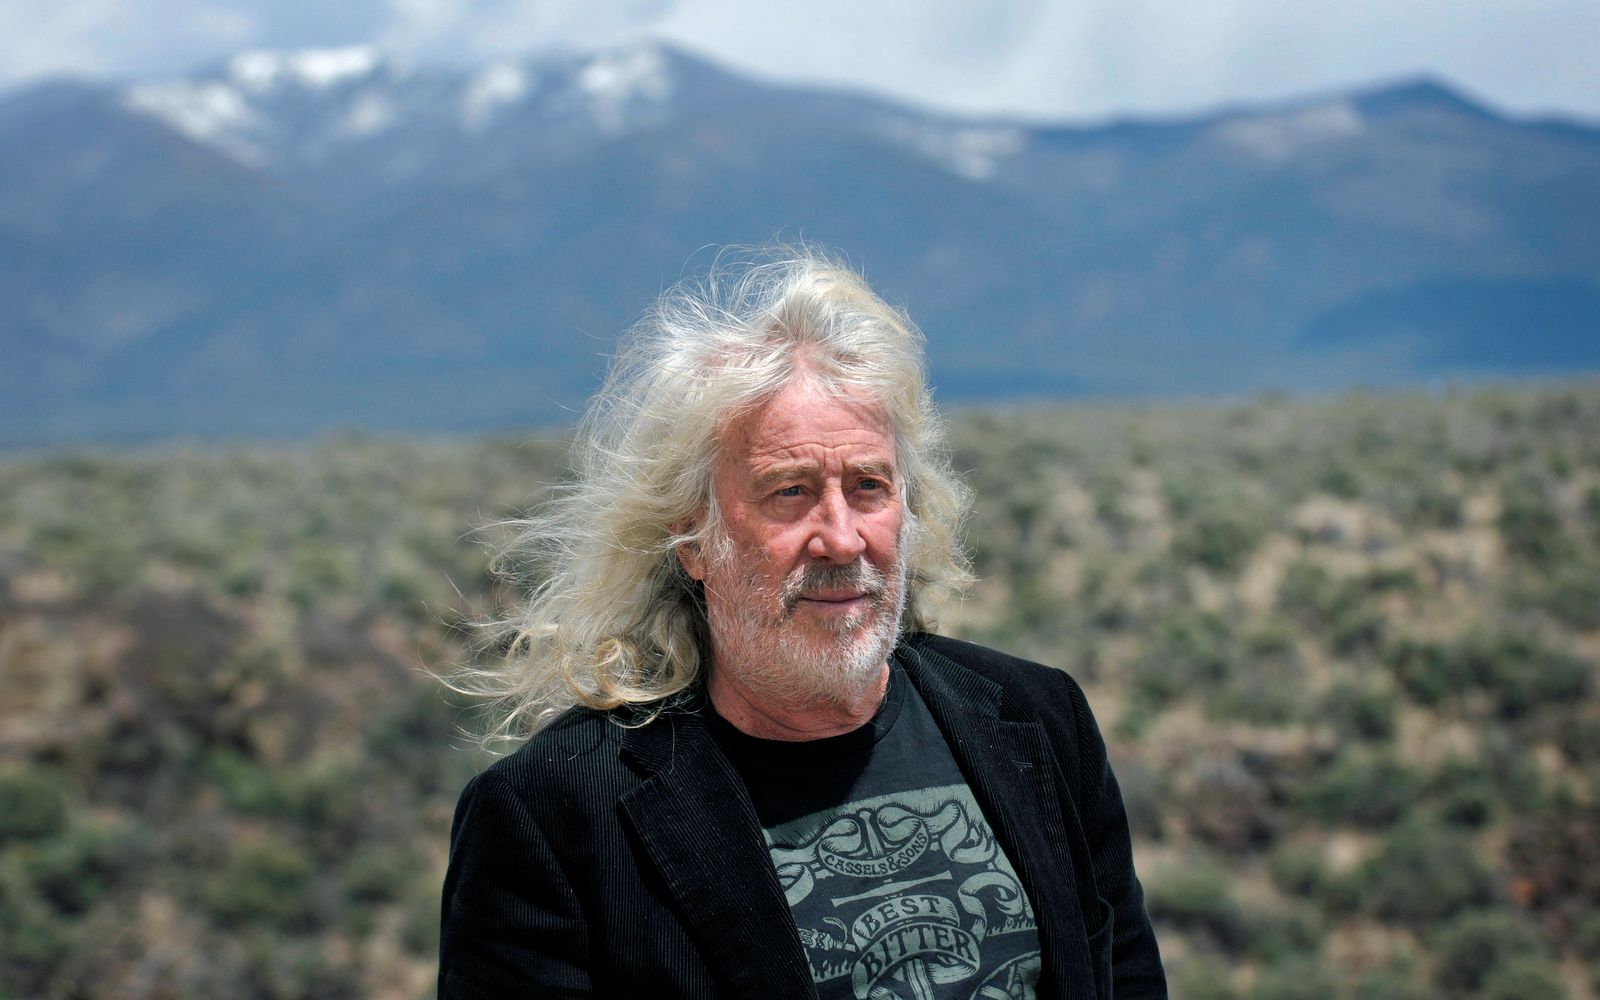 May 1, 2014, USA: Michael Reynolds, the creator of the Earthship communty and Earthship Biotecture Academy, outside his